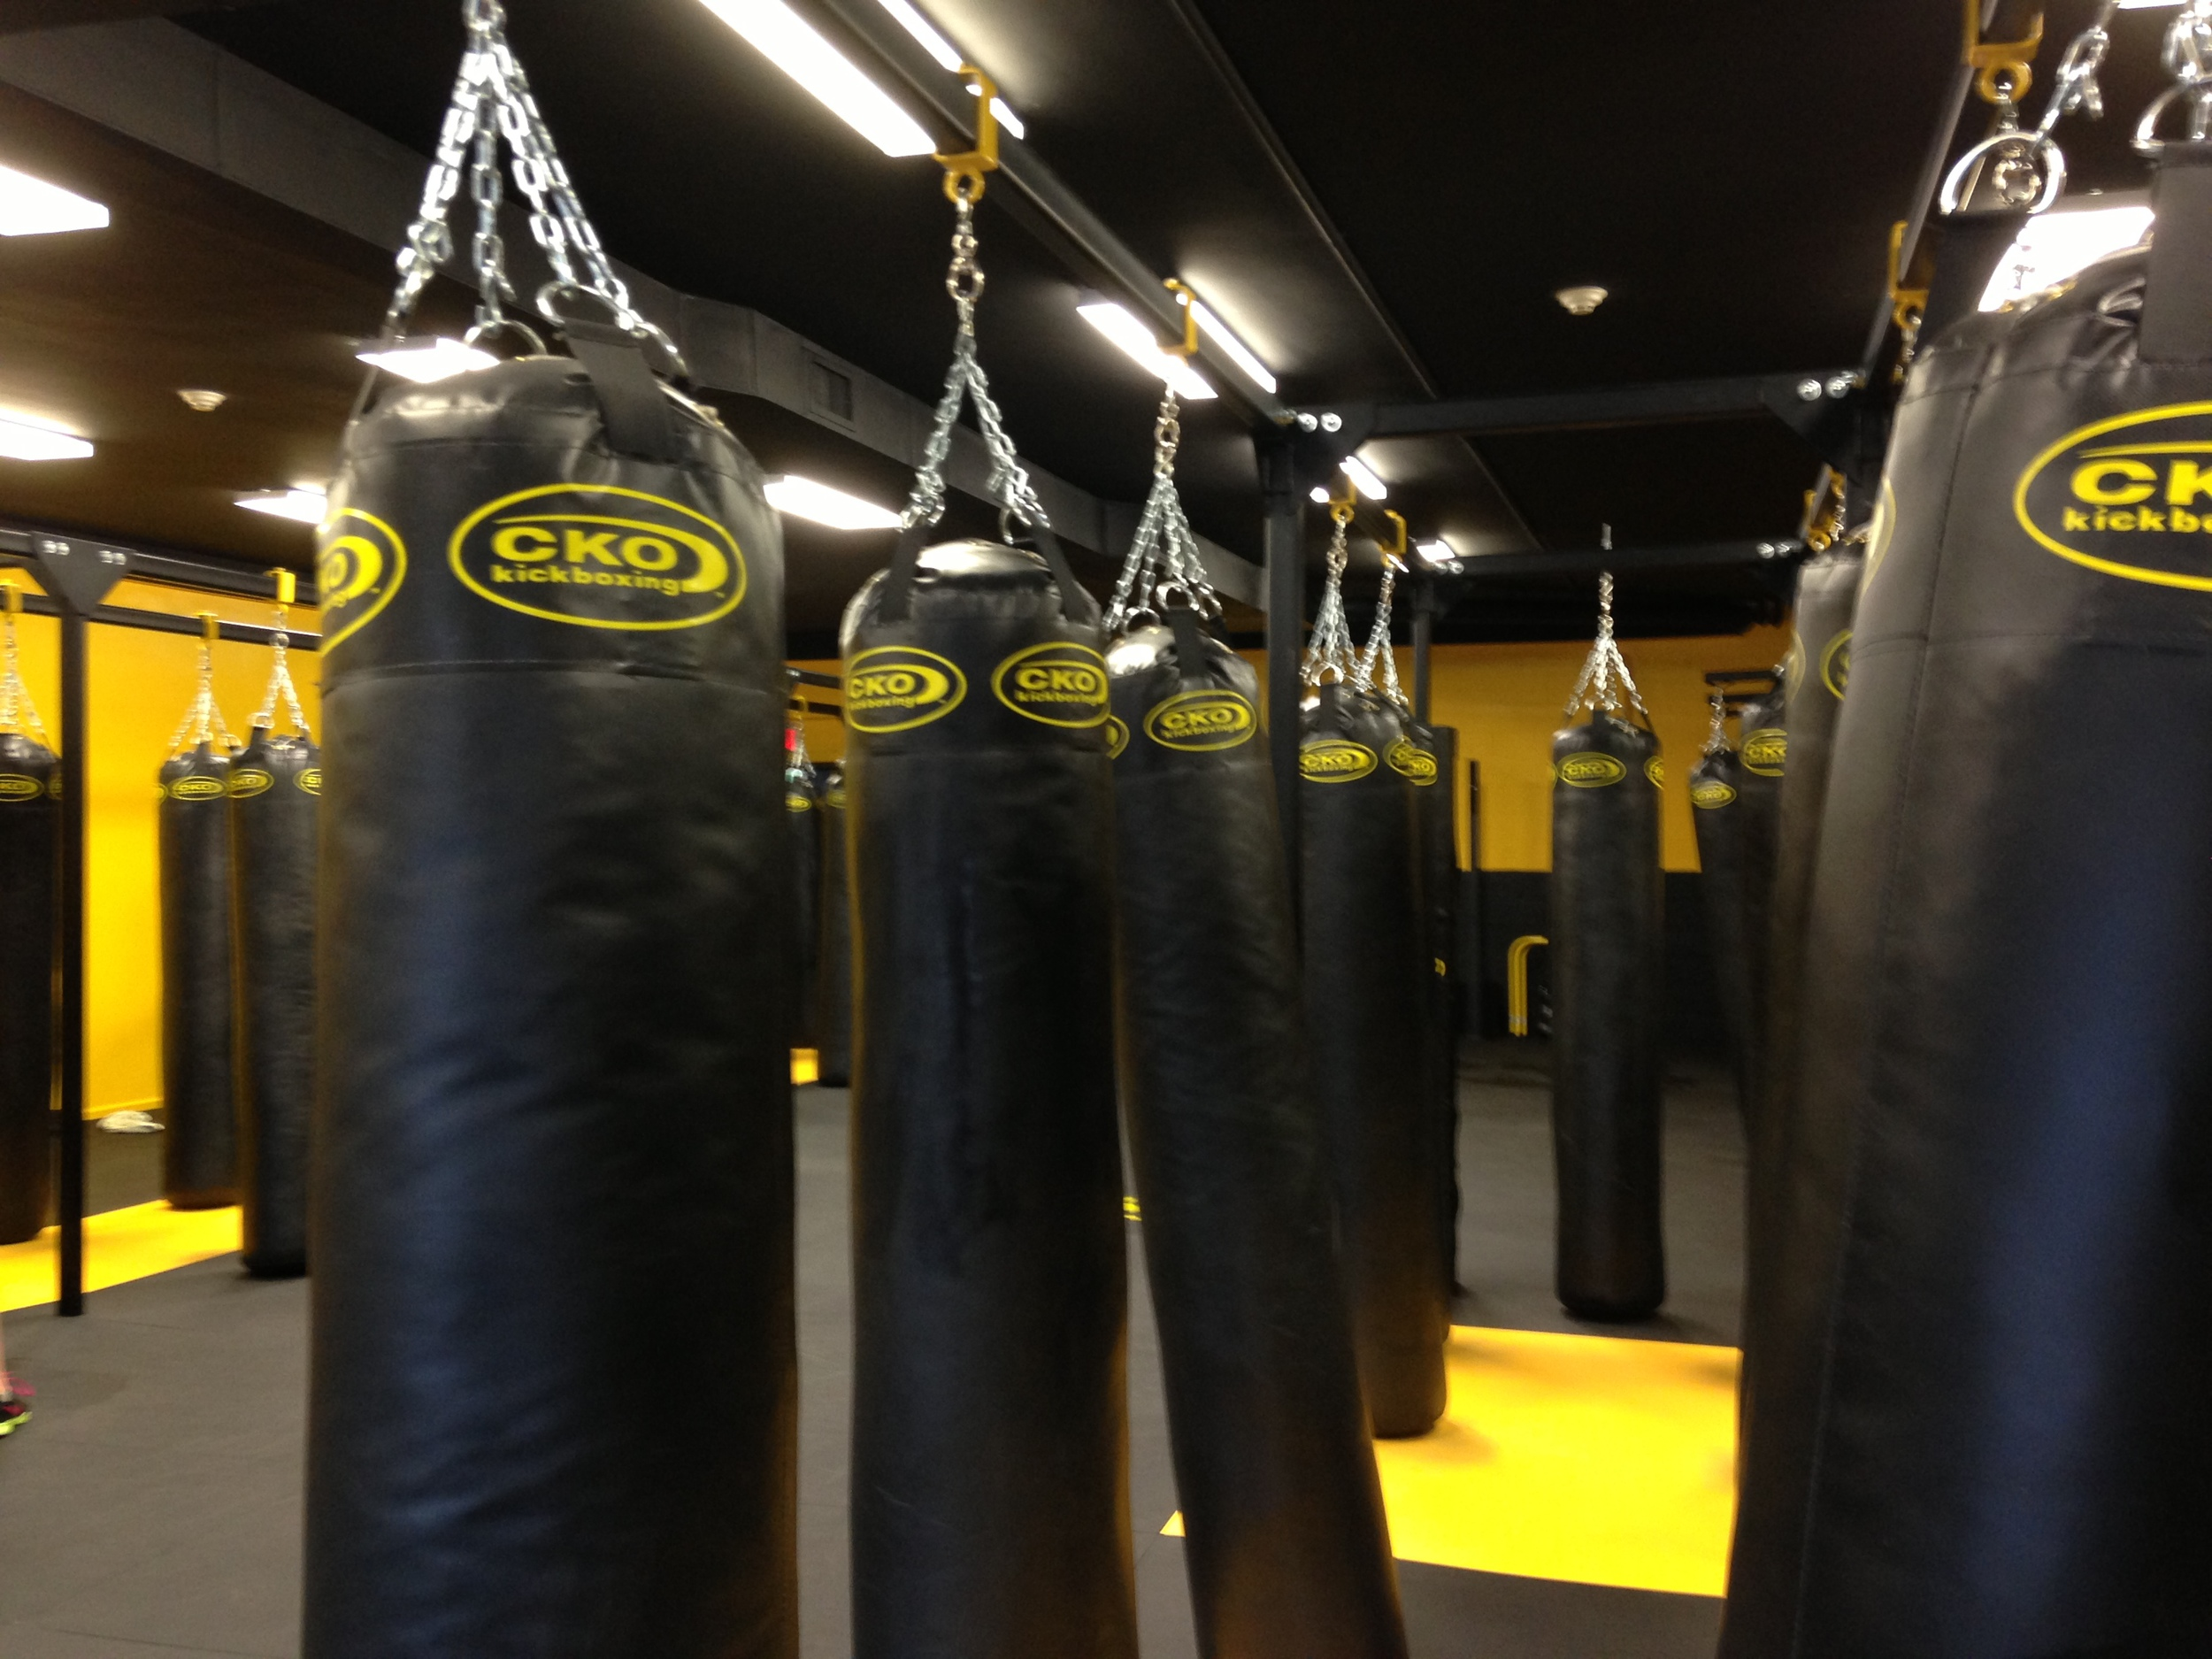 and then there was CKO Kickboxing — Joyfully Me